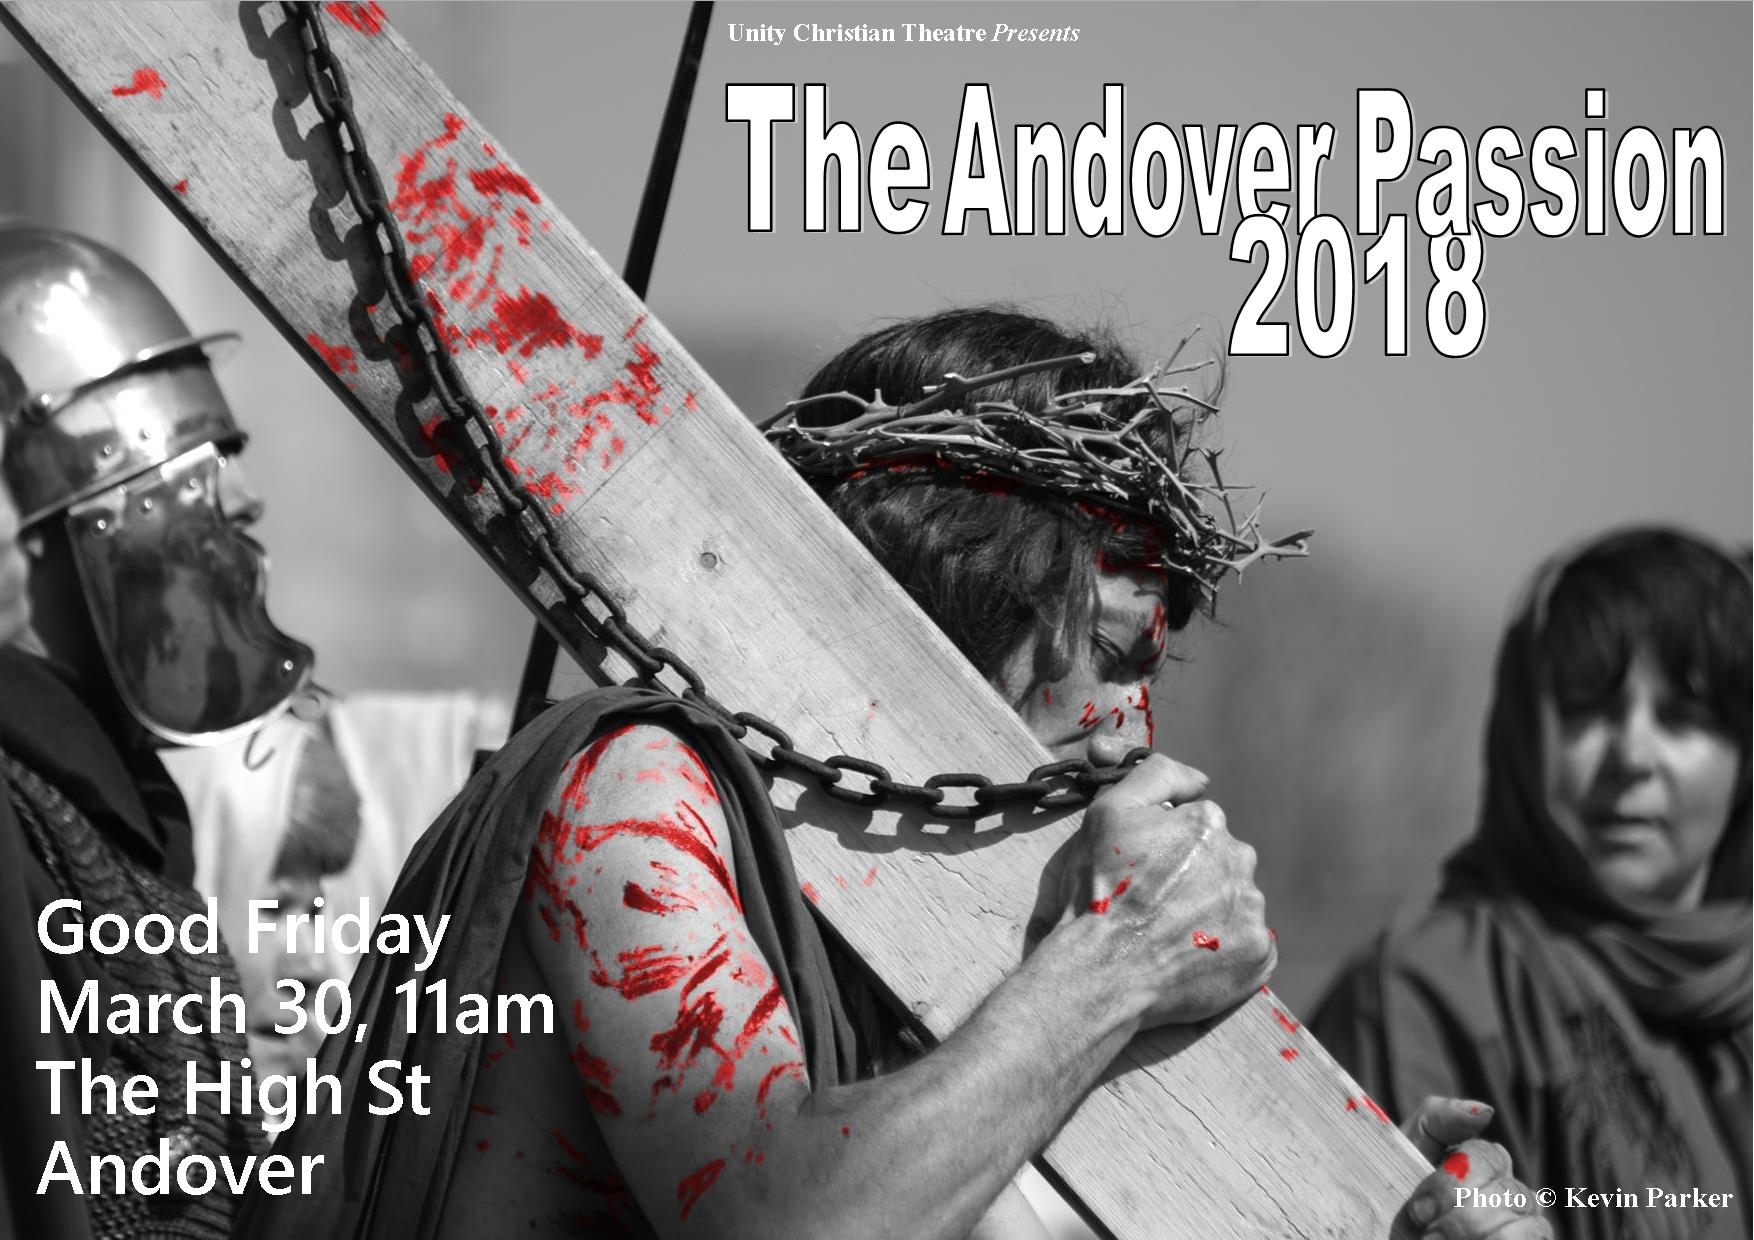 THE ANDOVER PASSION 2018